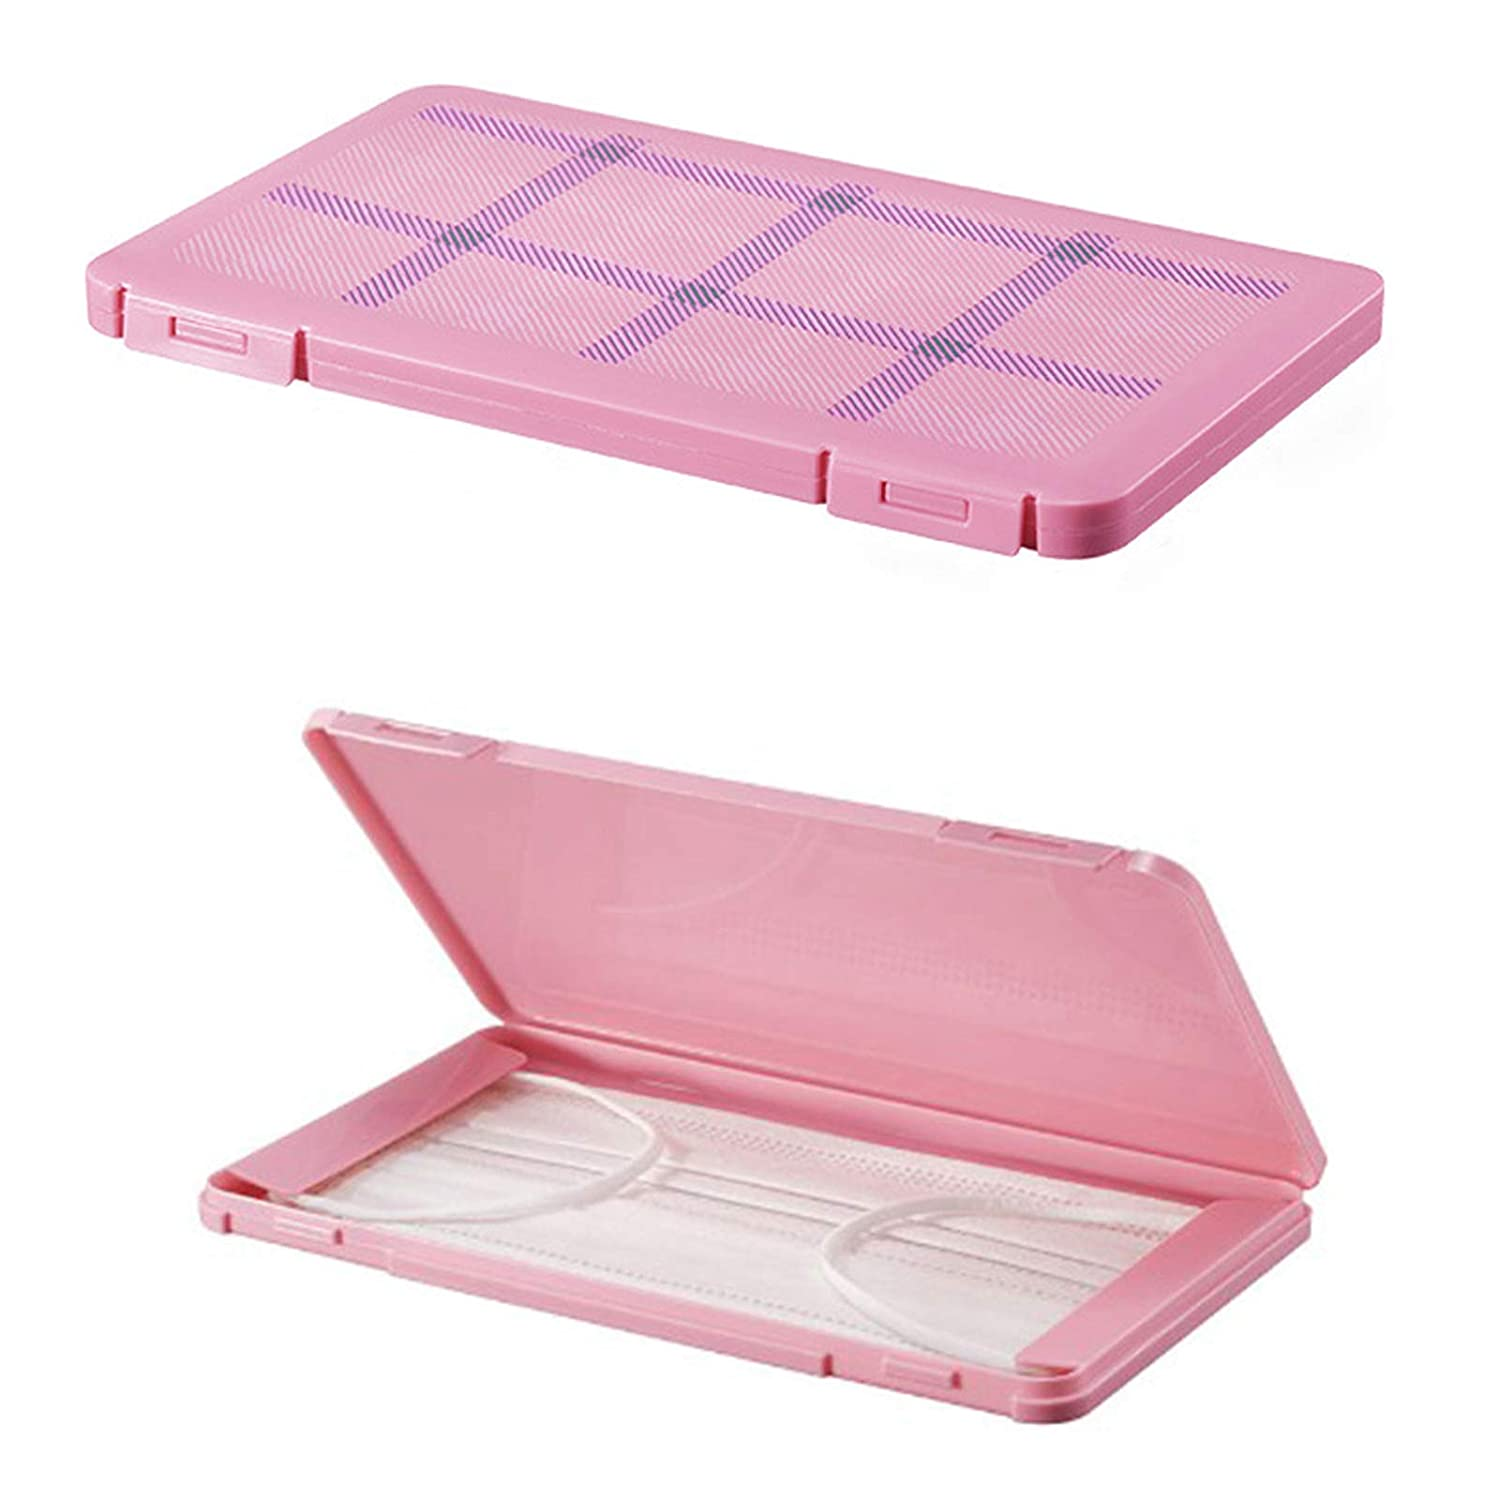 Face Cotton Masks Case Portable Box Health Keeper Storage Container Dustproof Easy Carrying Plaid Pattern Mask Case Organizer Pack of 3 (Cute Powder)